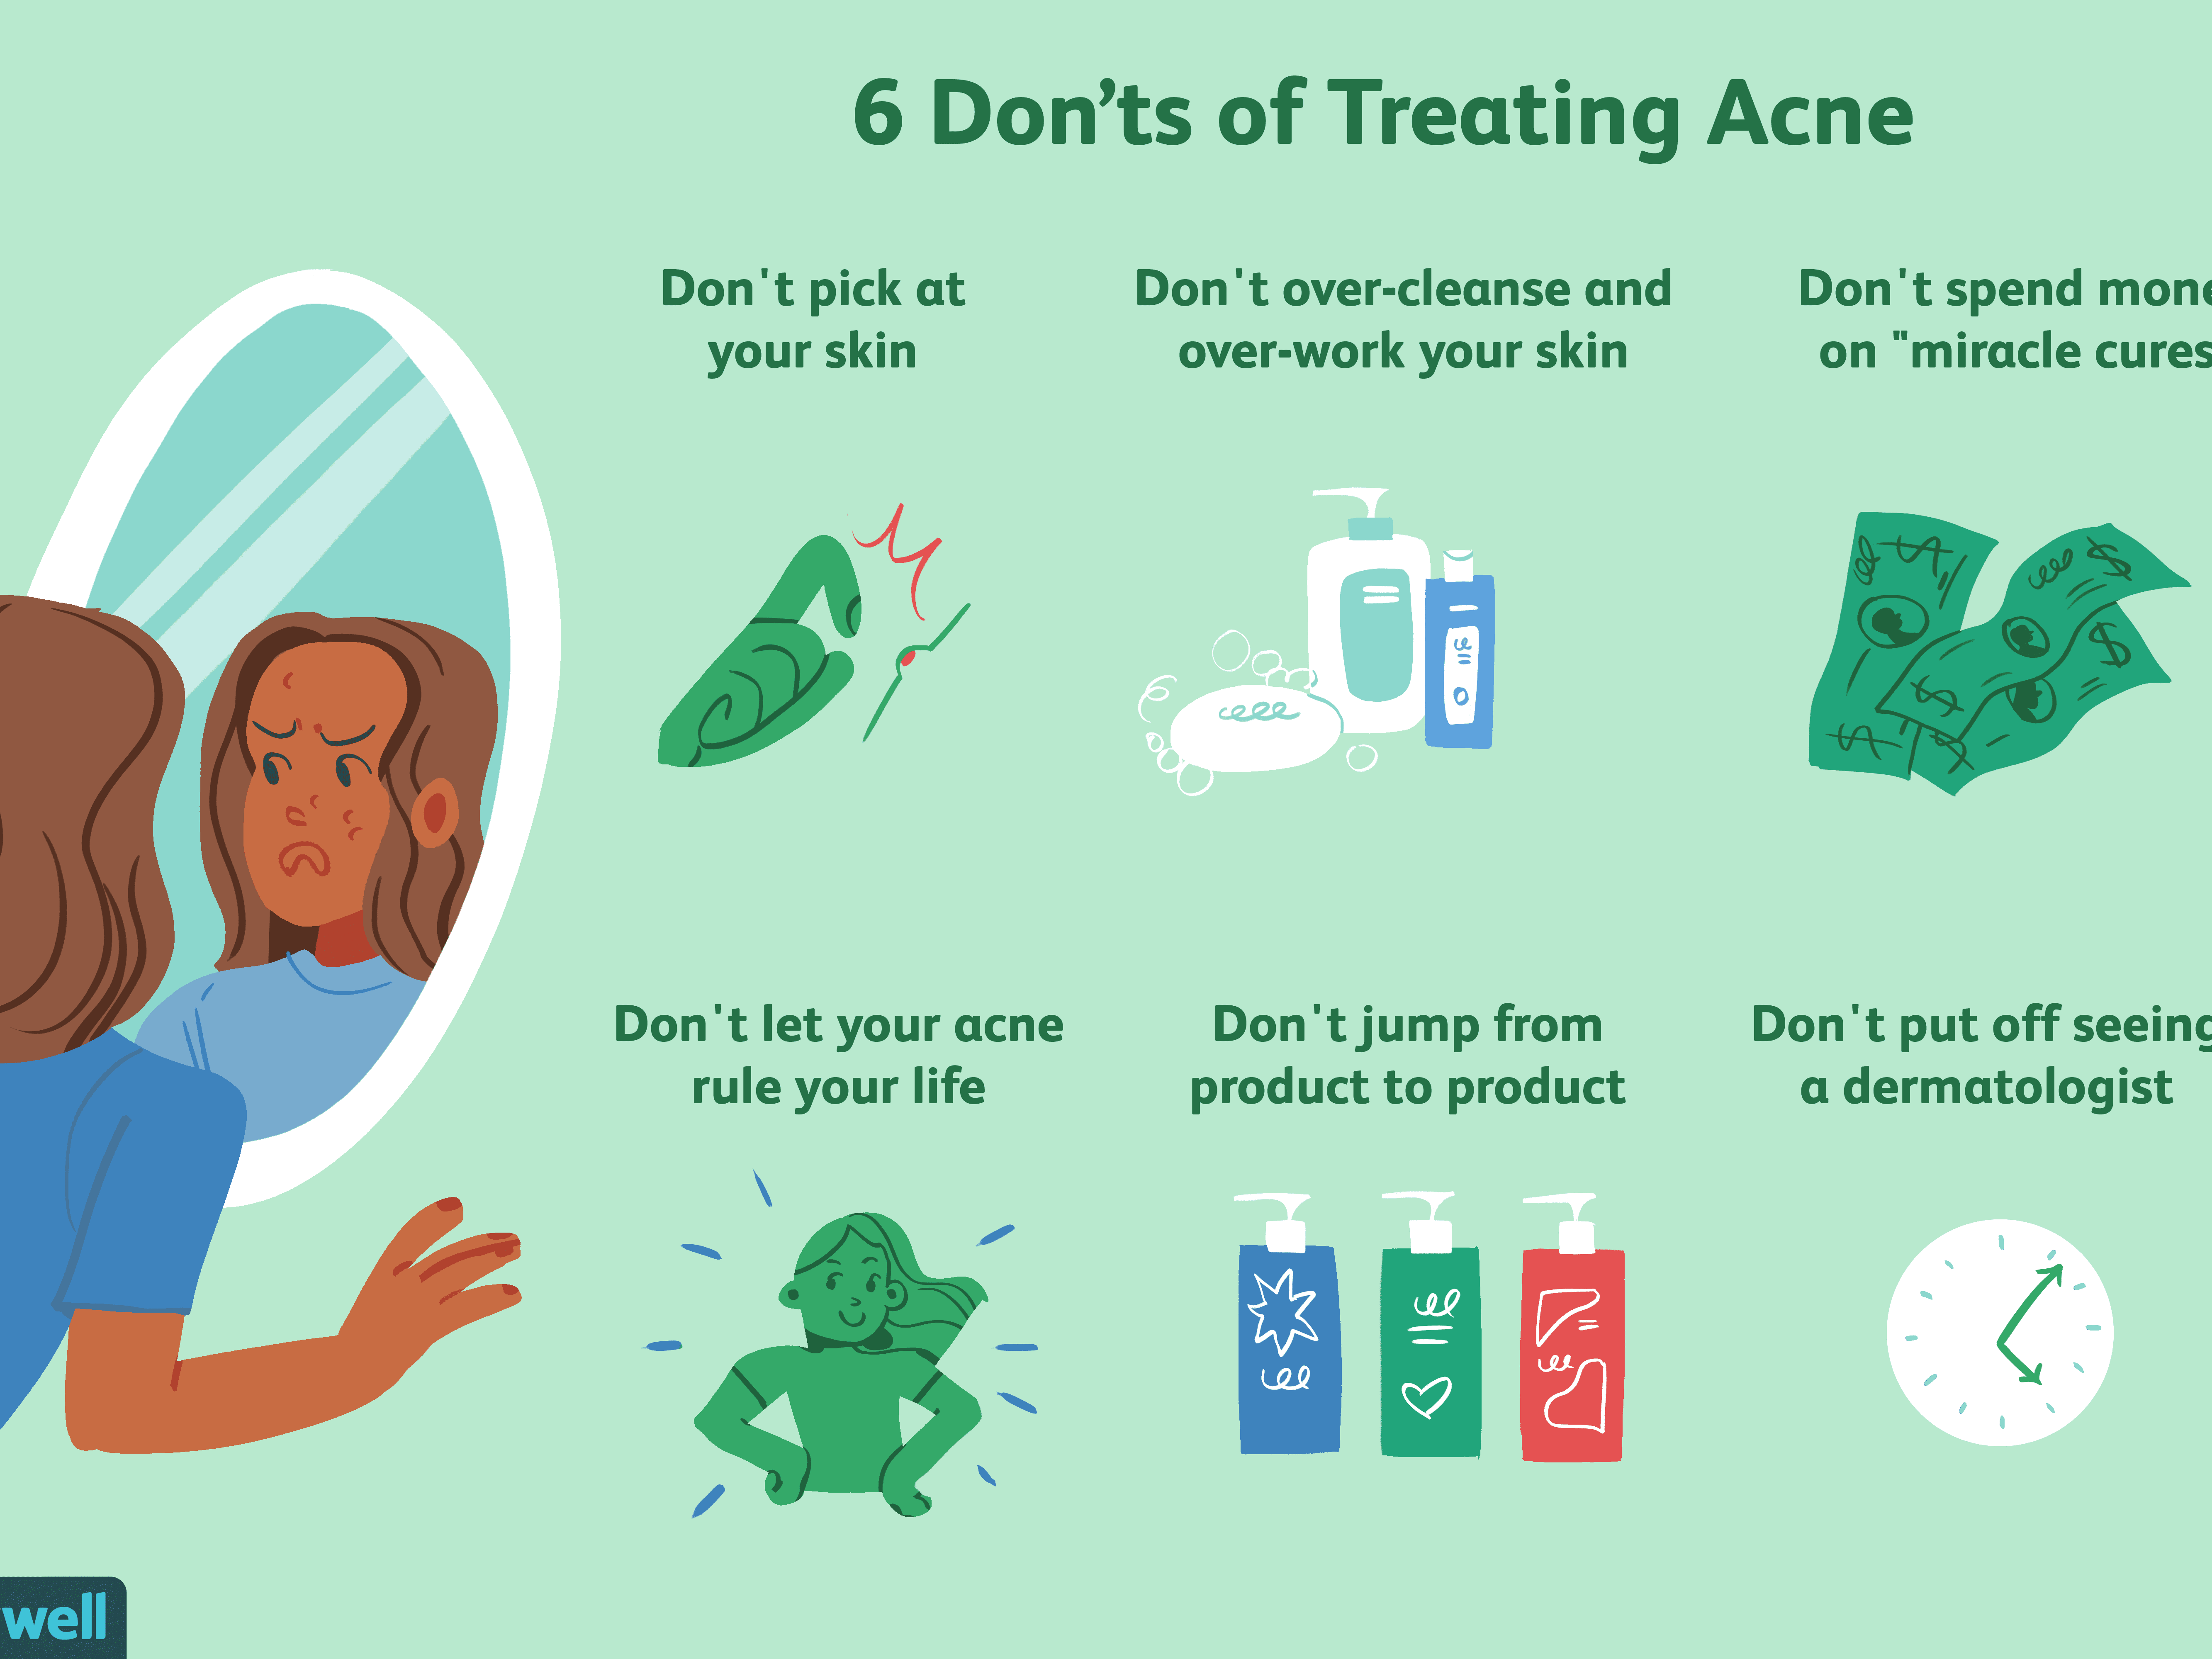 10 Things To Stop Doing When You Have Acne